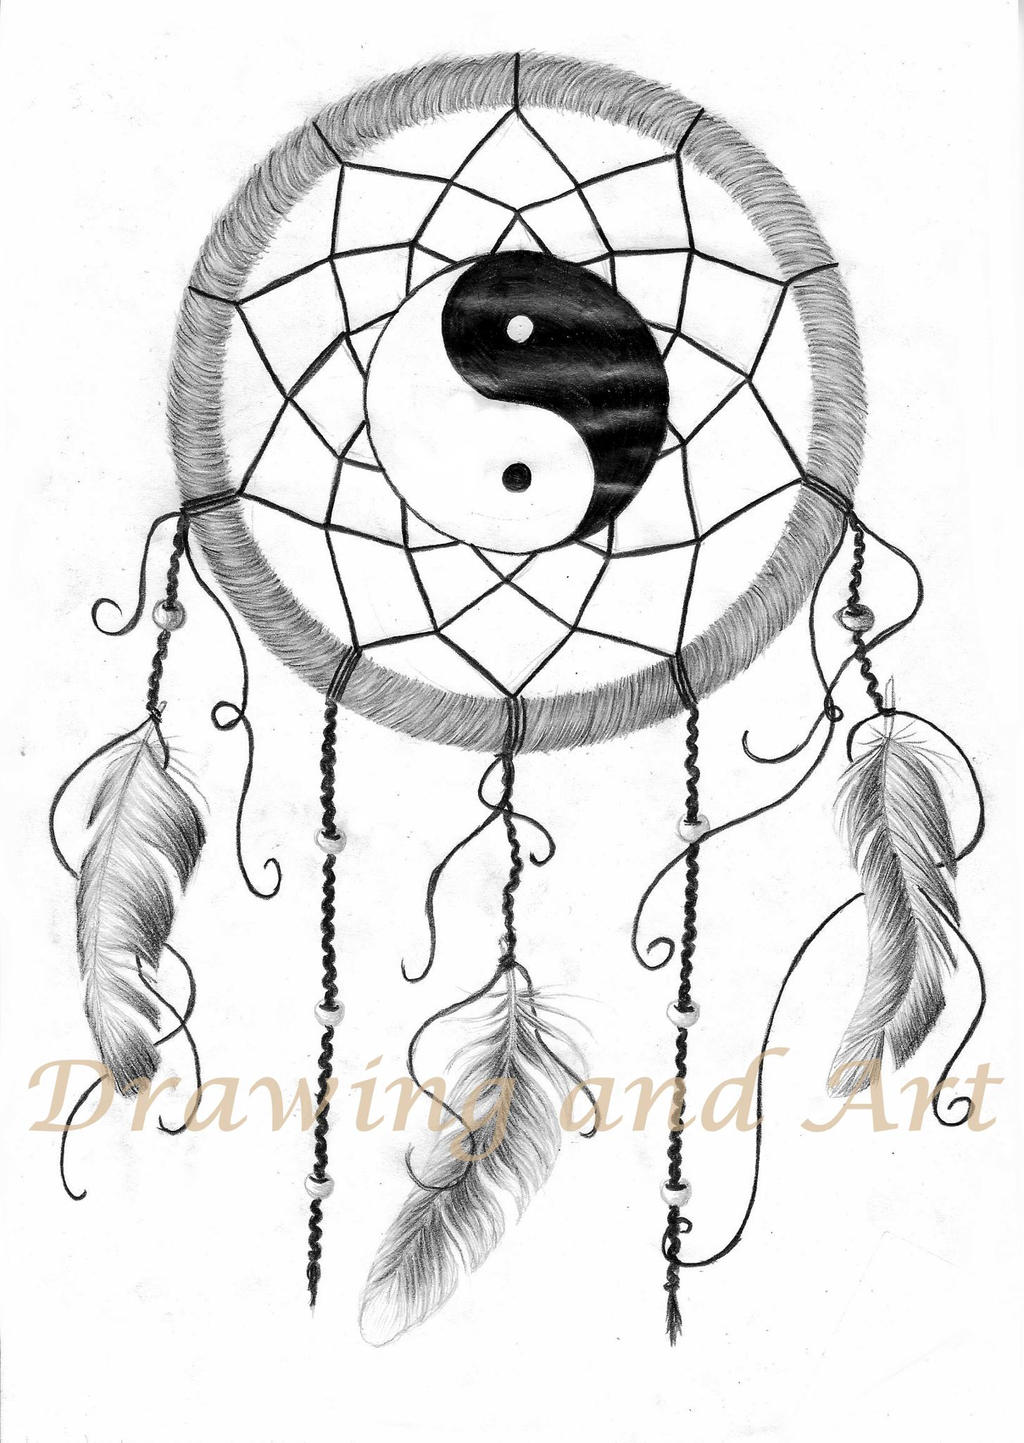 Dream catcher by drawingsbynatalia on deviantart for Dream catcher drawing easy